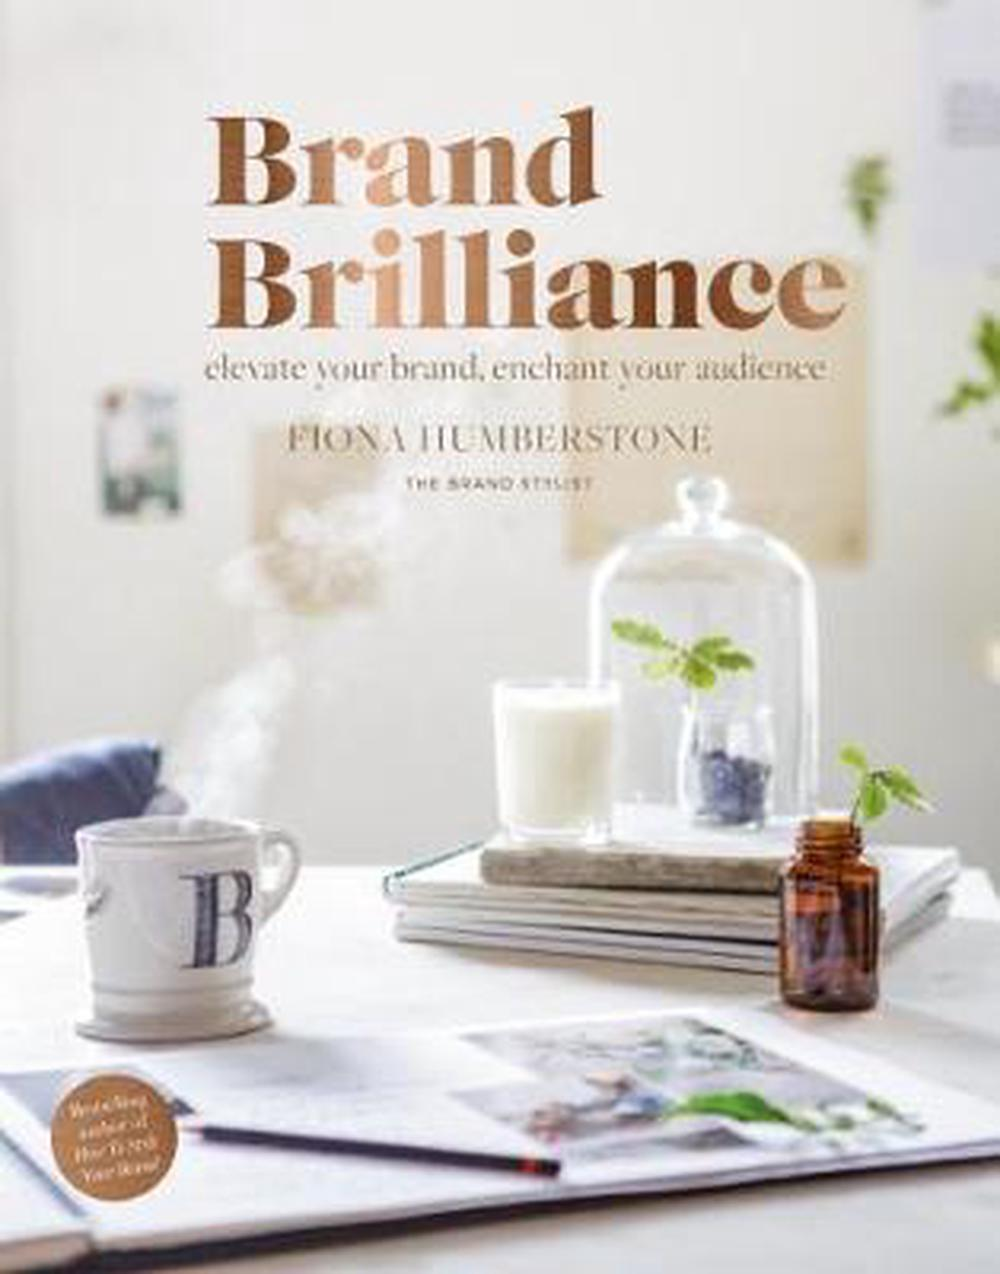 Brand Brilliance: Elevate Your Brand, Enchant Your Audience by Fiona Humberstone, ISBN: 9780956454546